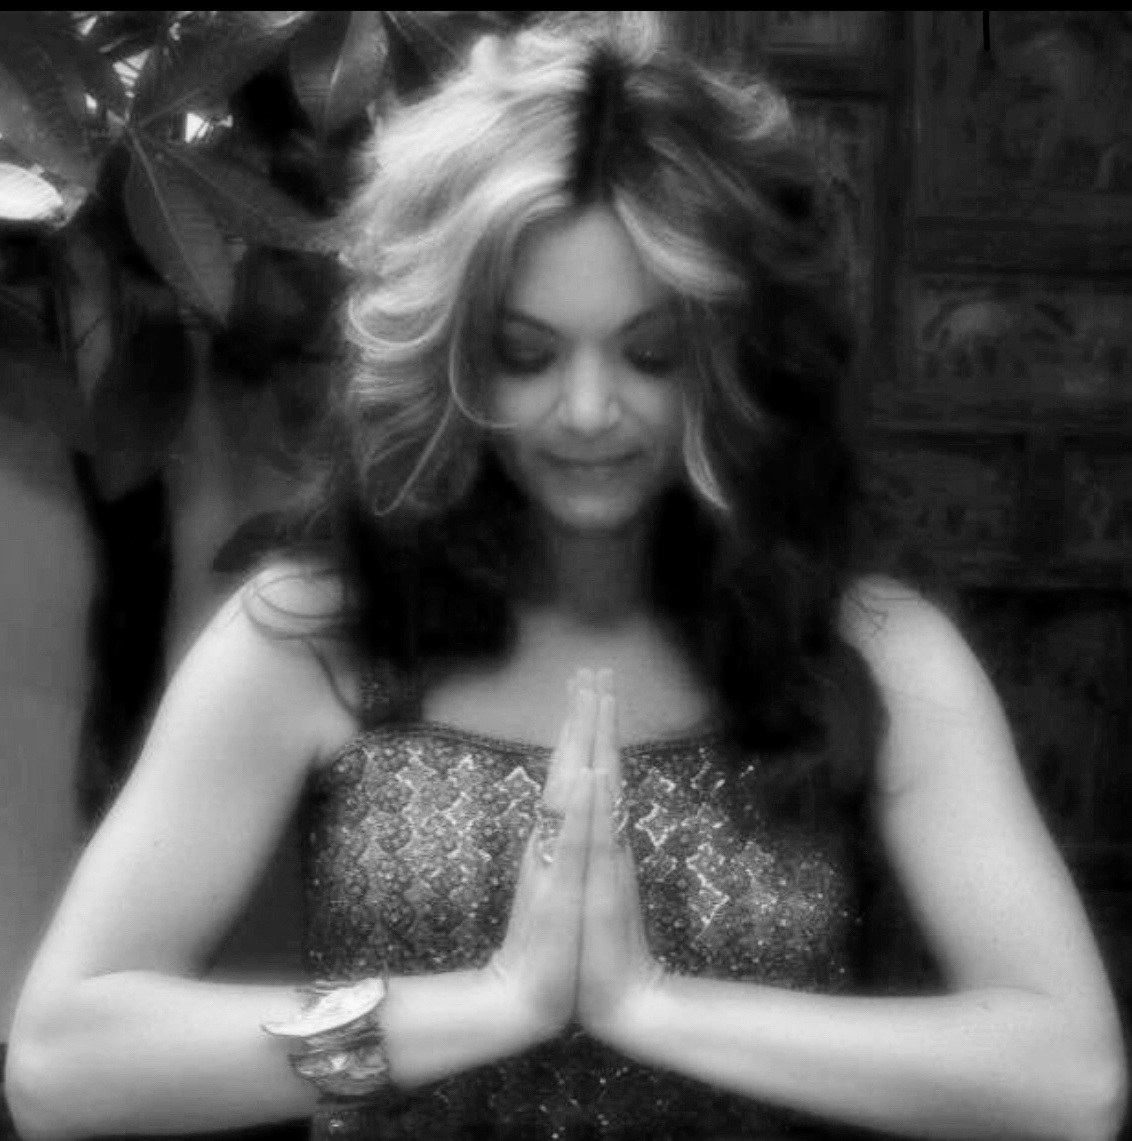 me+prayer+hands+b%26w.jpg